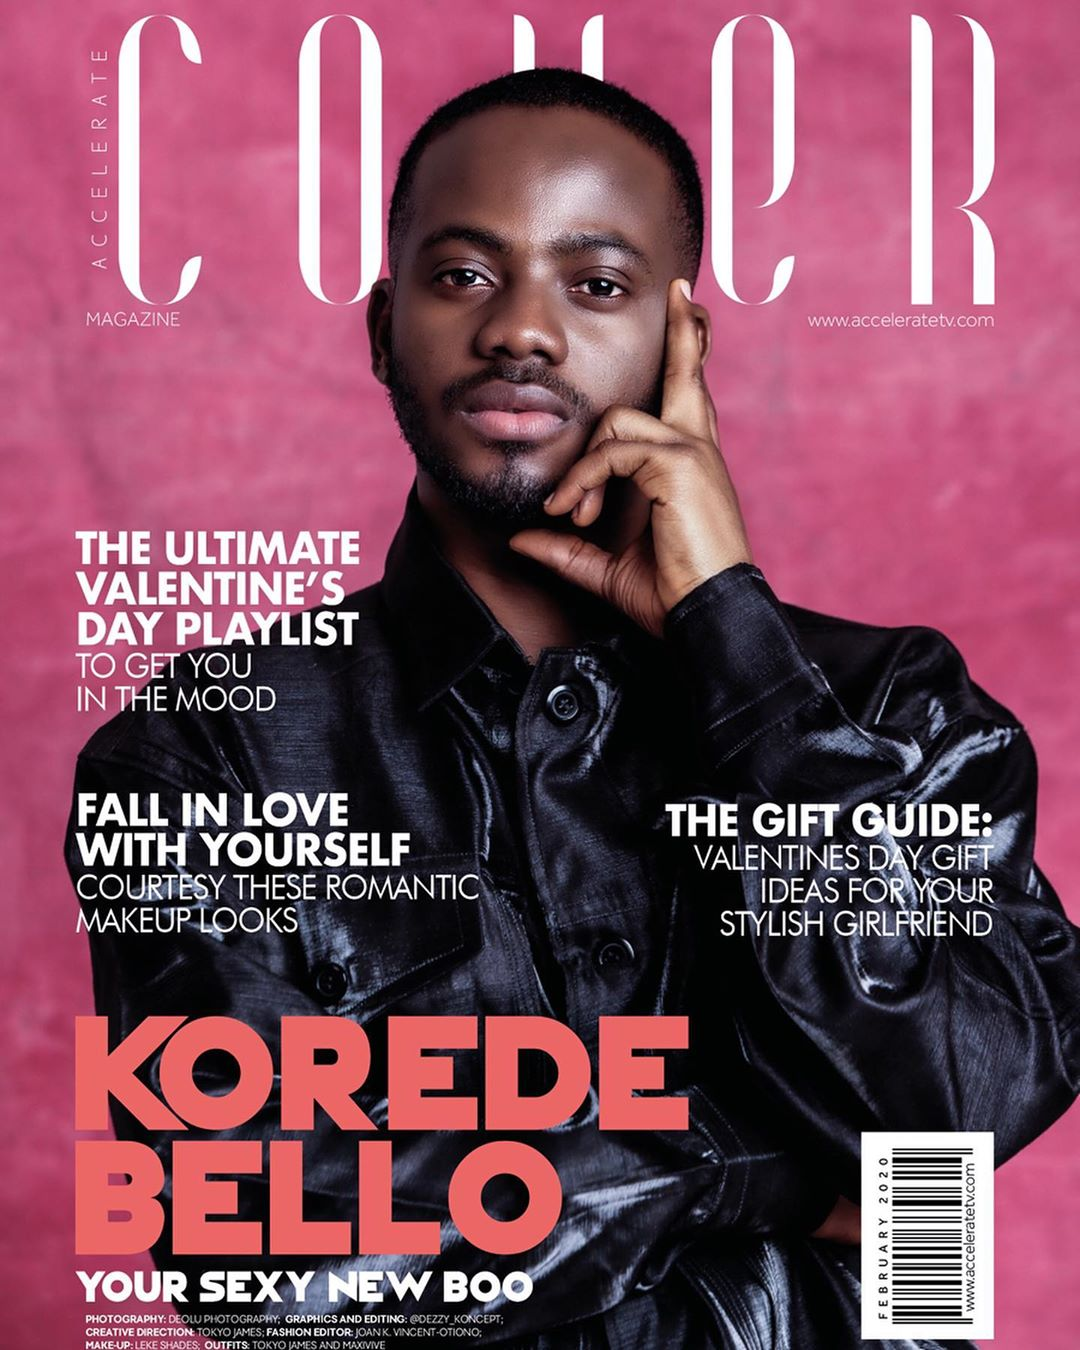 Your Sexy New Boo – Korede Bello is on Accelerate TV's The Cover